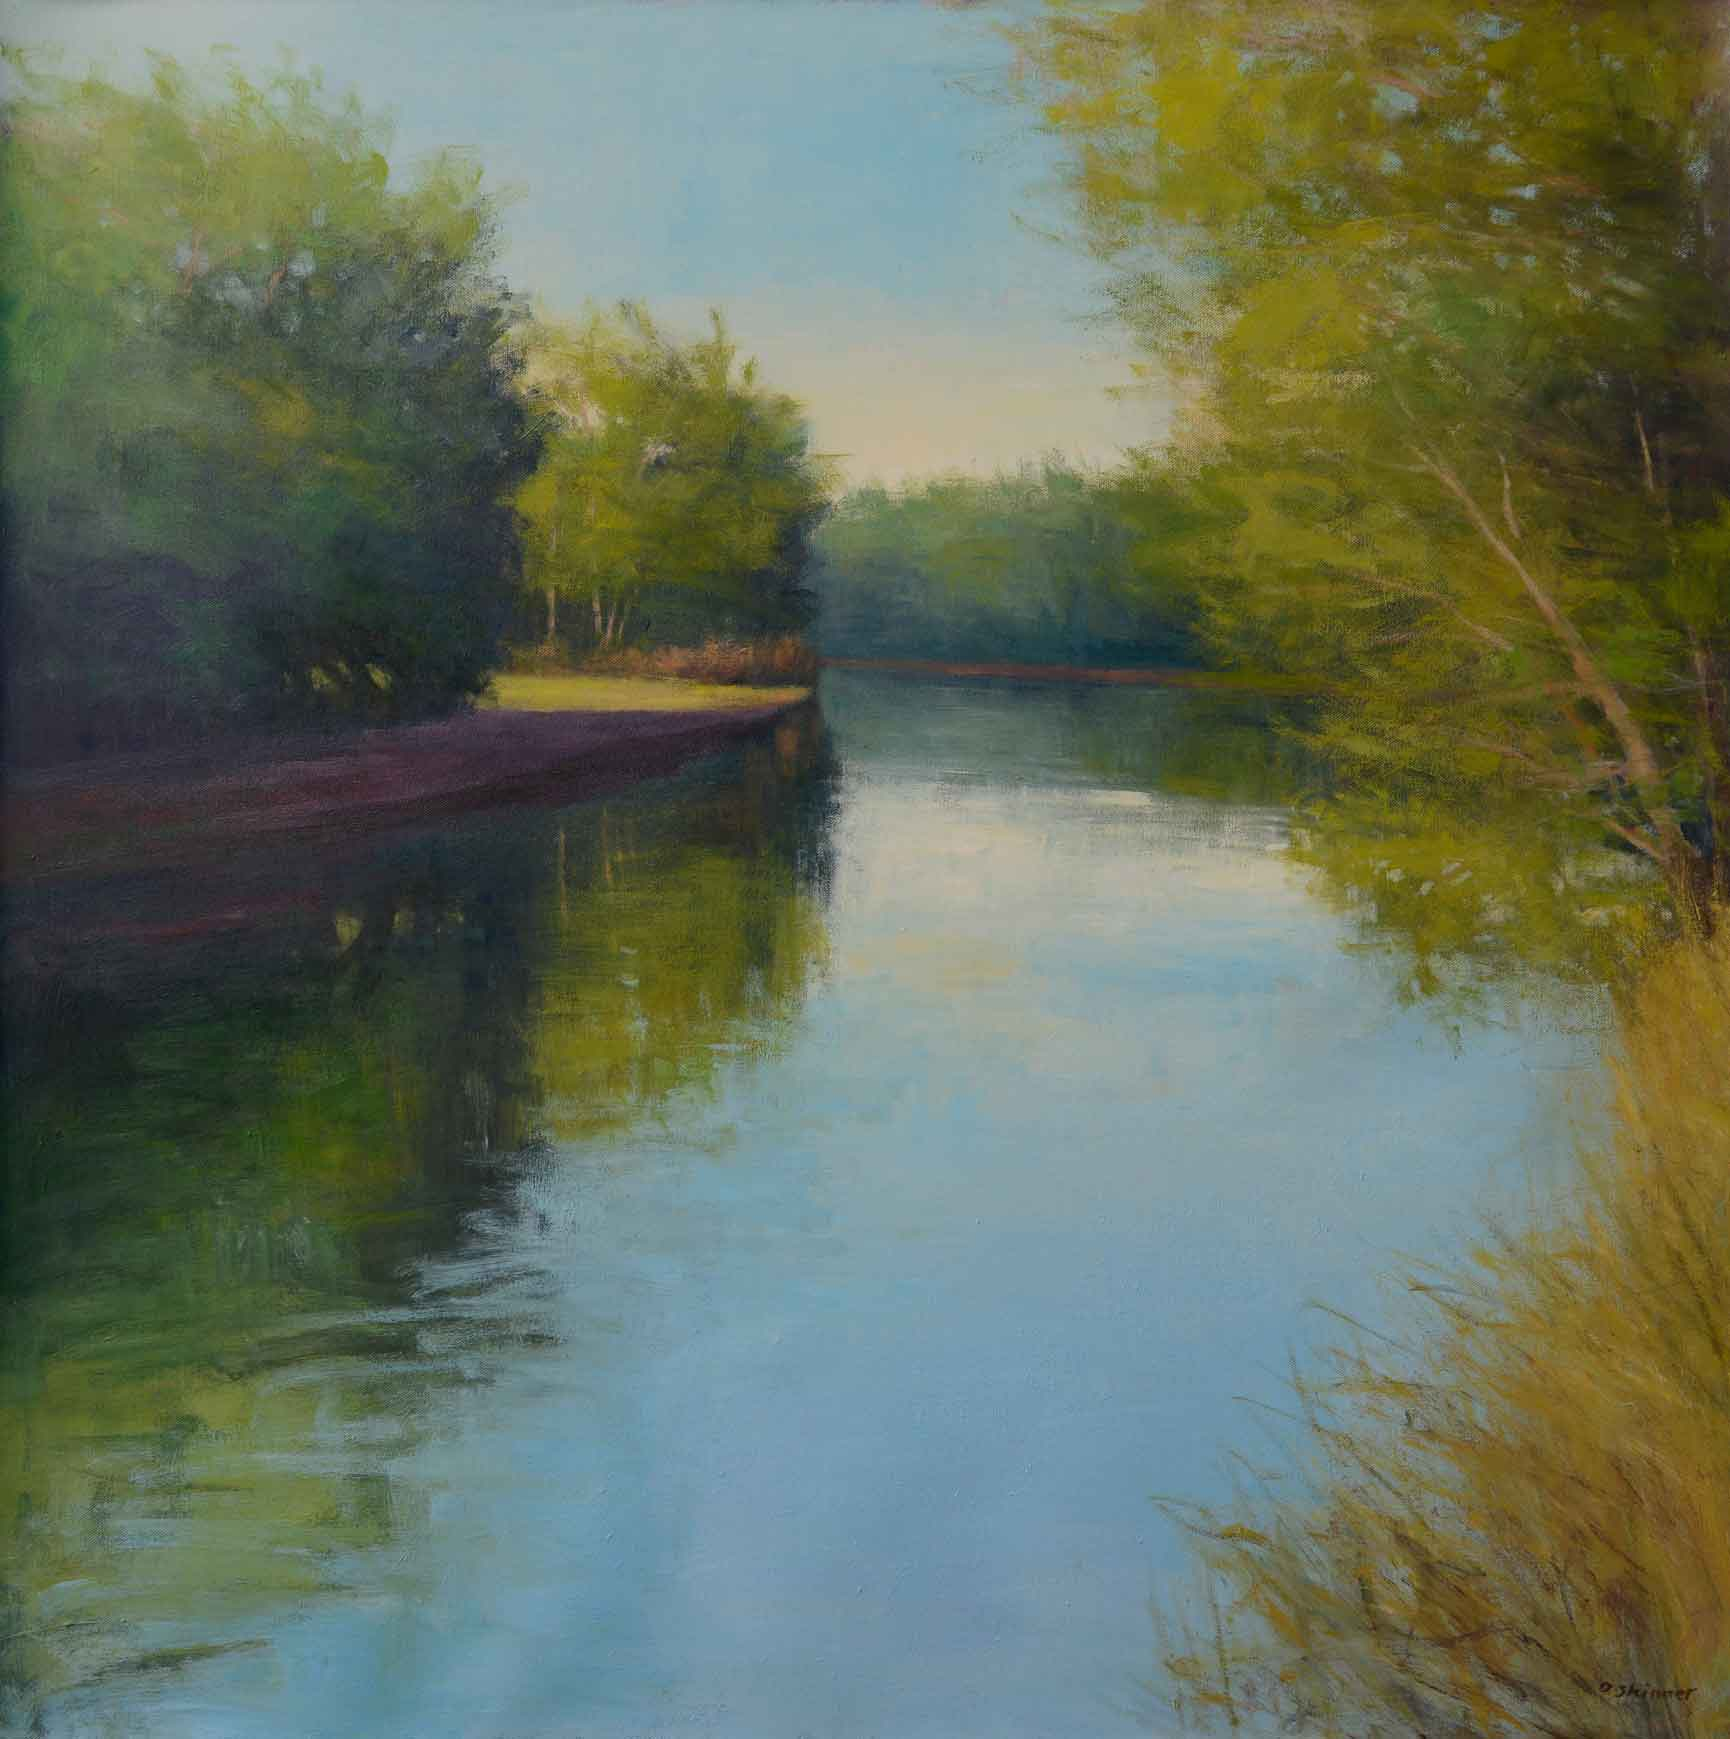 River Reflection (sold)